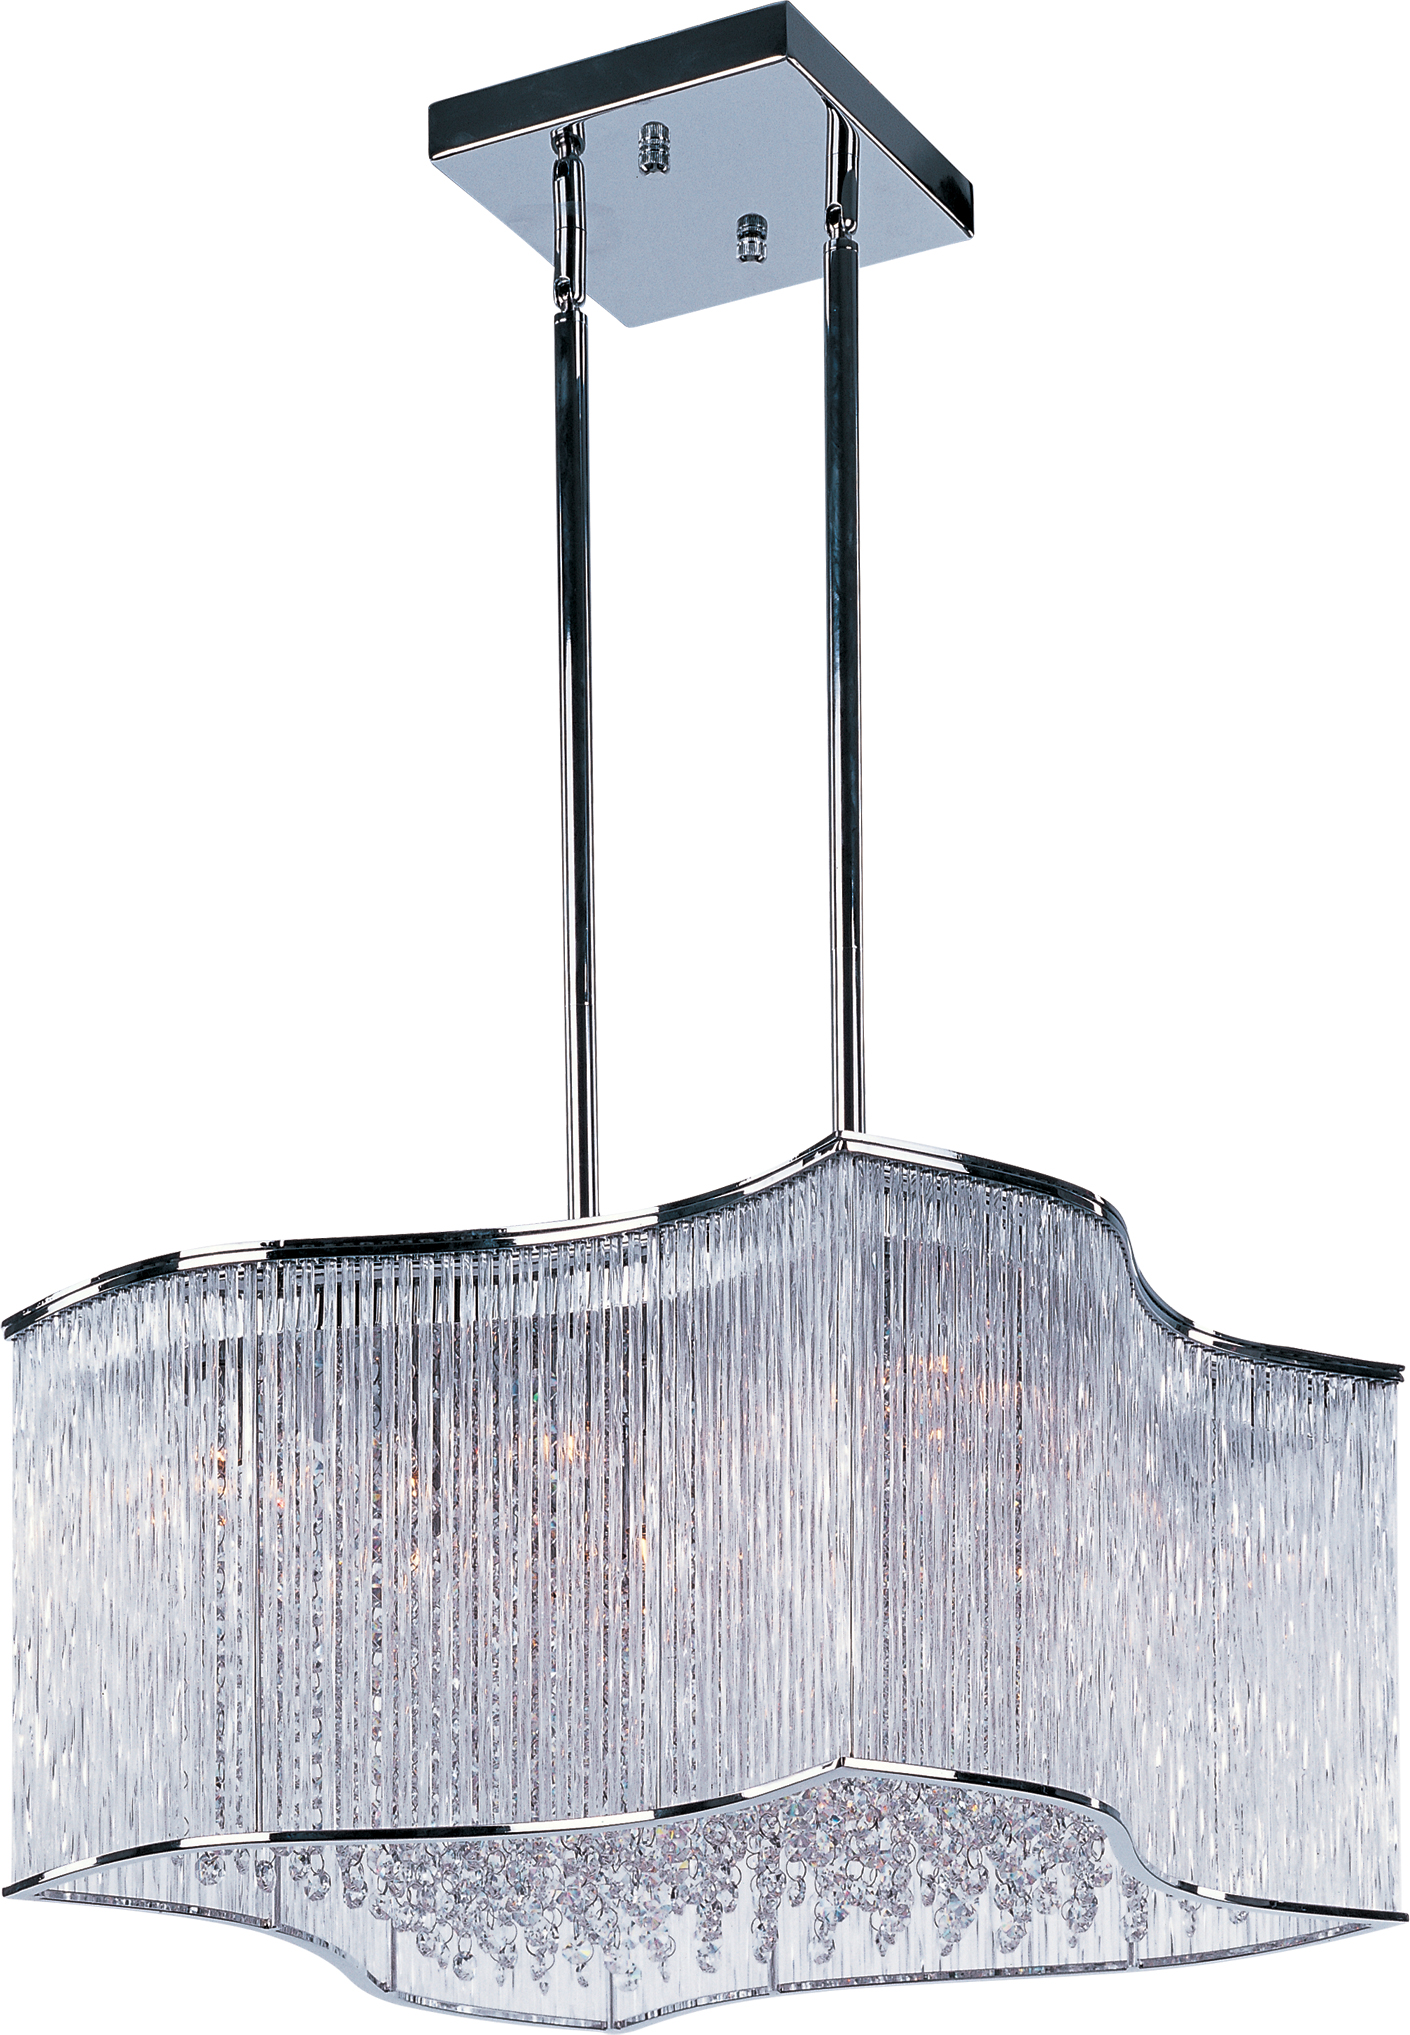 Swizzle Pendant | Maxim Lighting